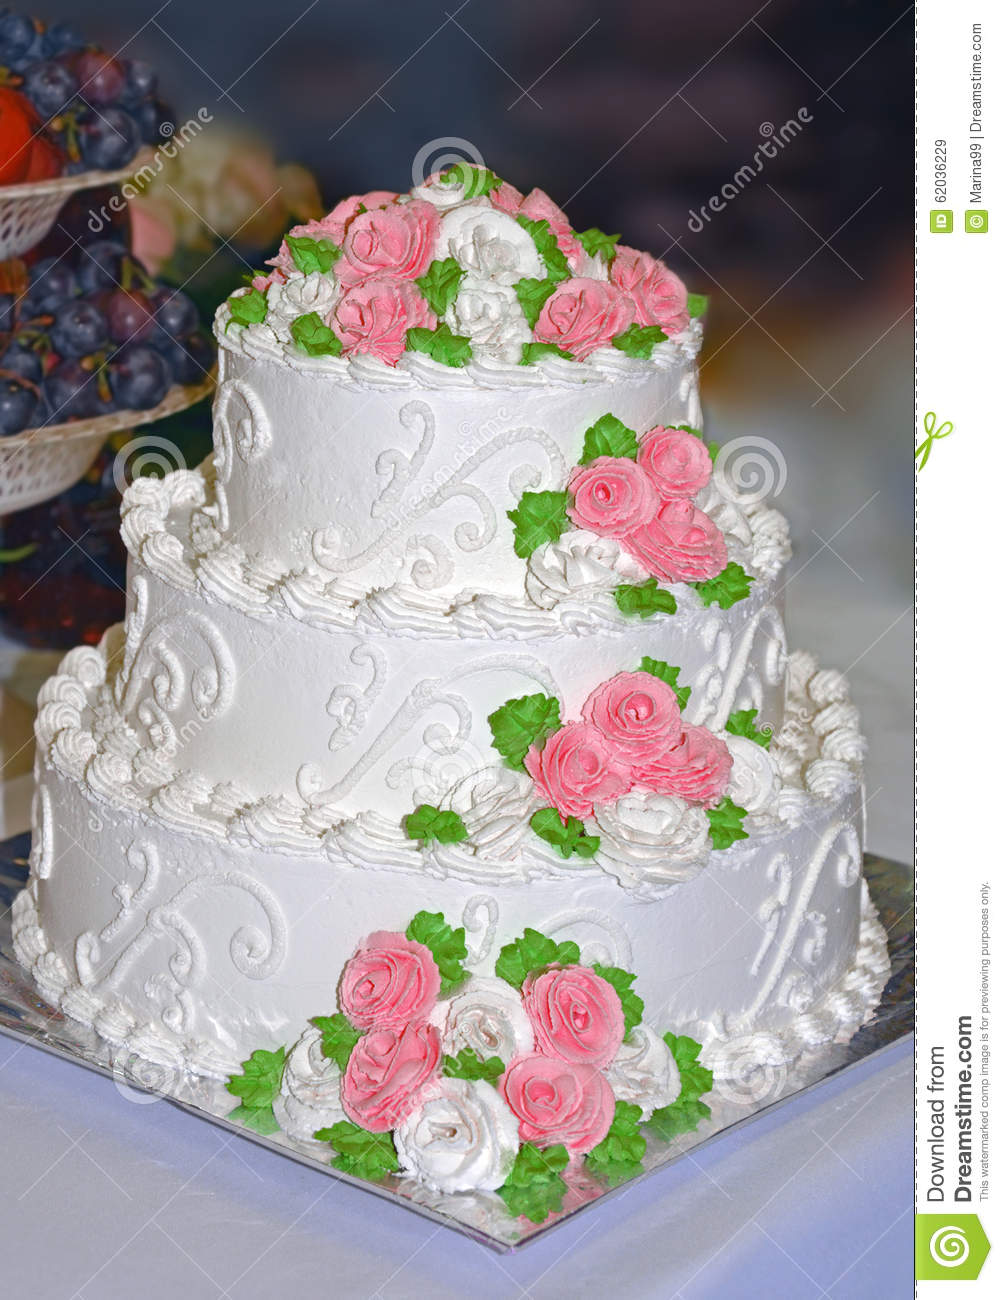 White Wedding Cake Decorated With Flowers From Cream Stock